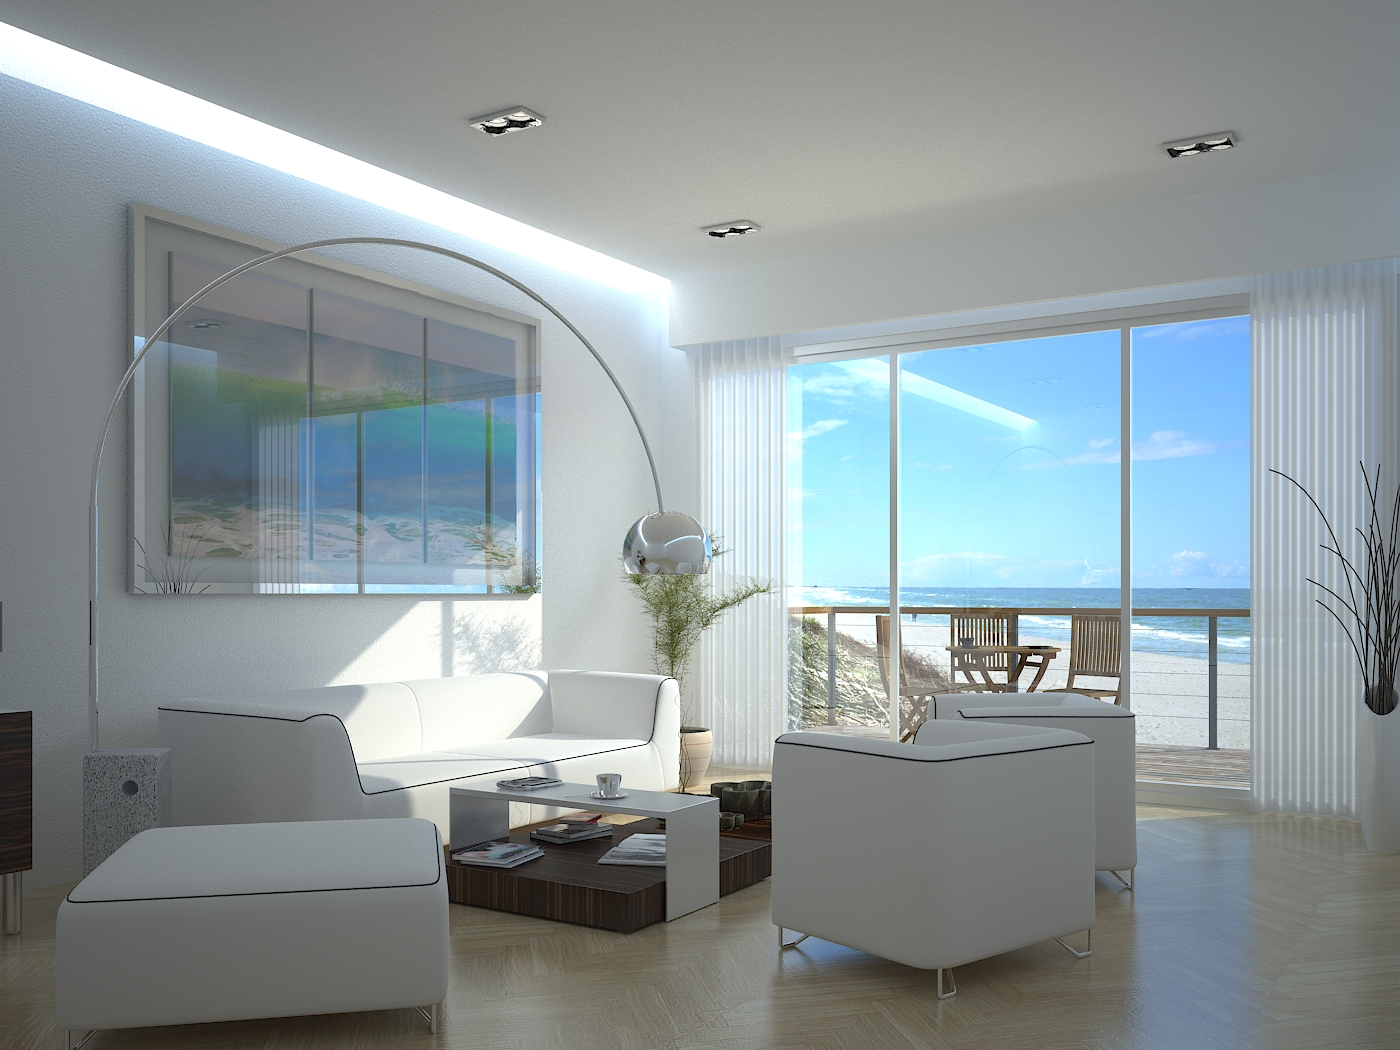 New Beach House Interior By Outboxdesign On Deviantart